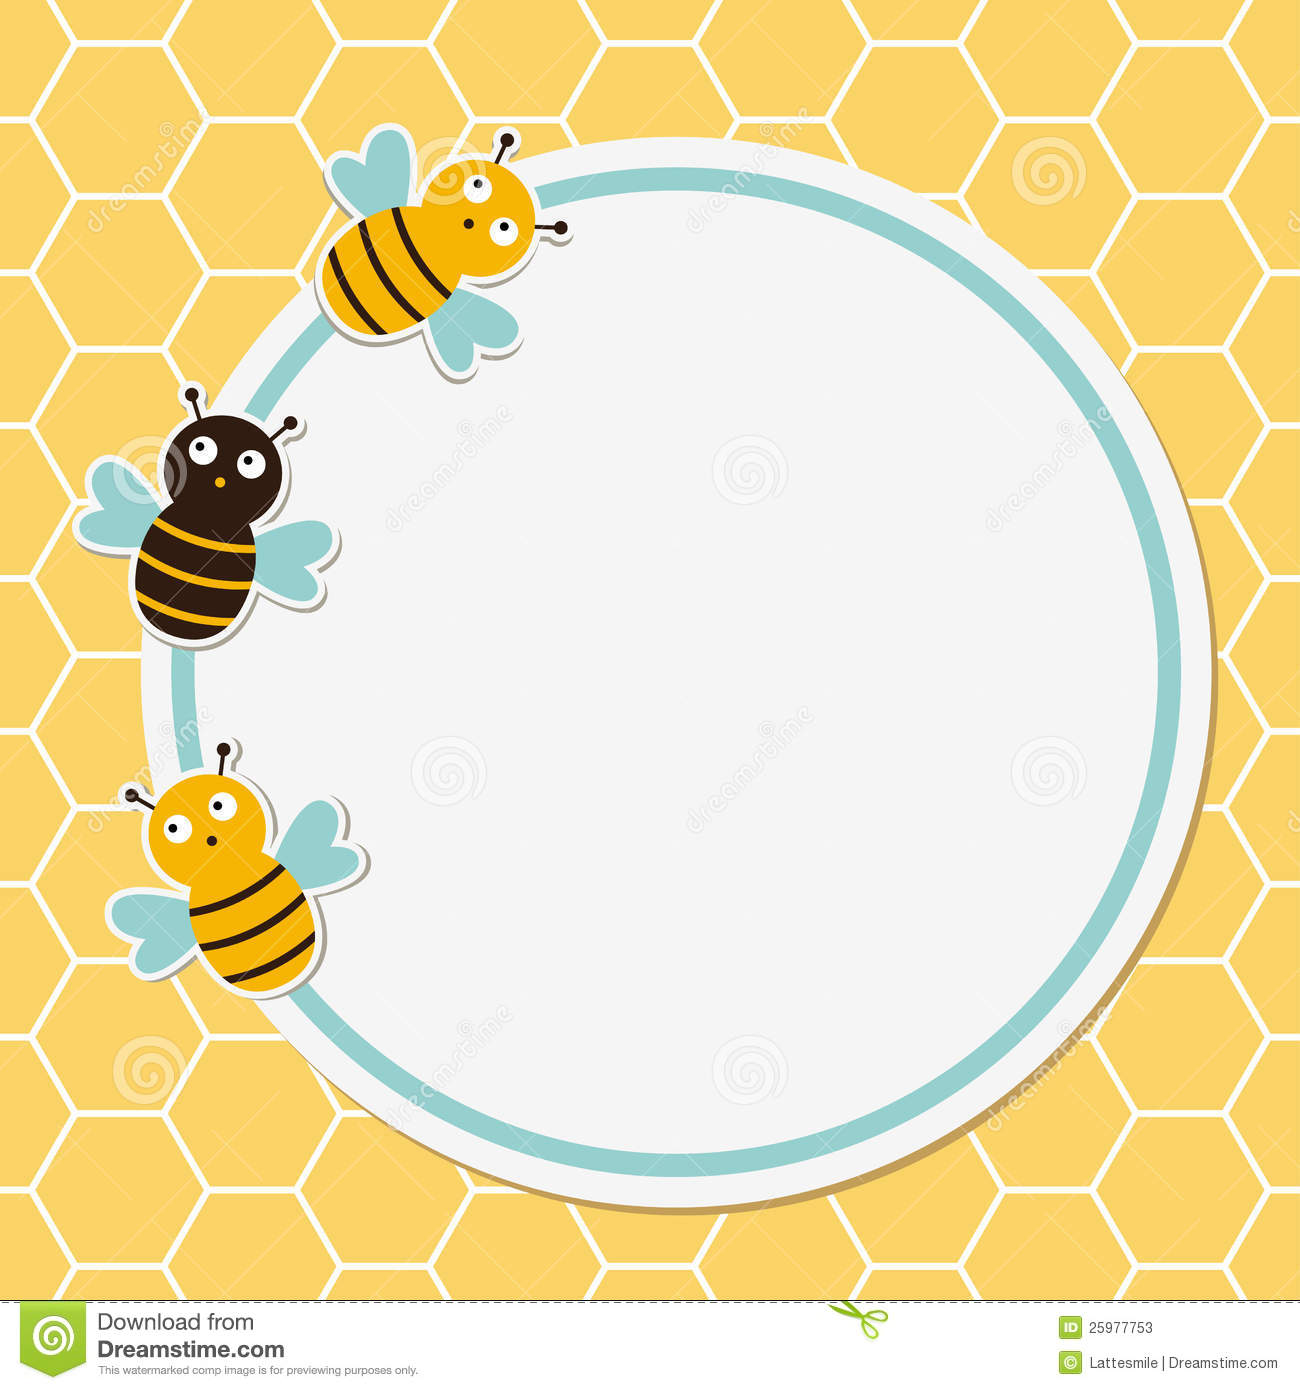 Bees Cute Frame Stock Vector Illustration Of Card